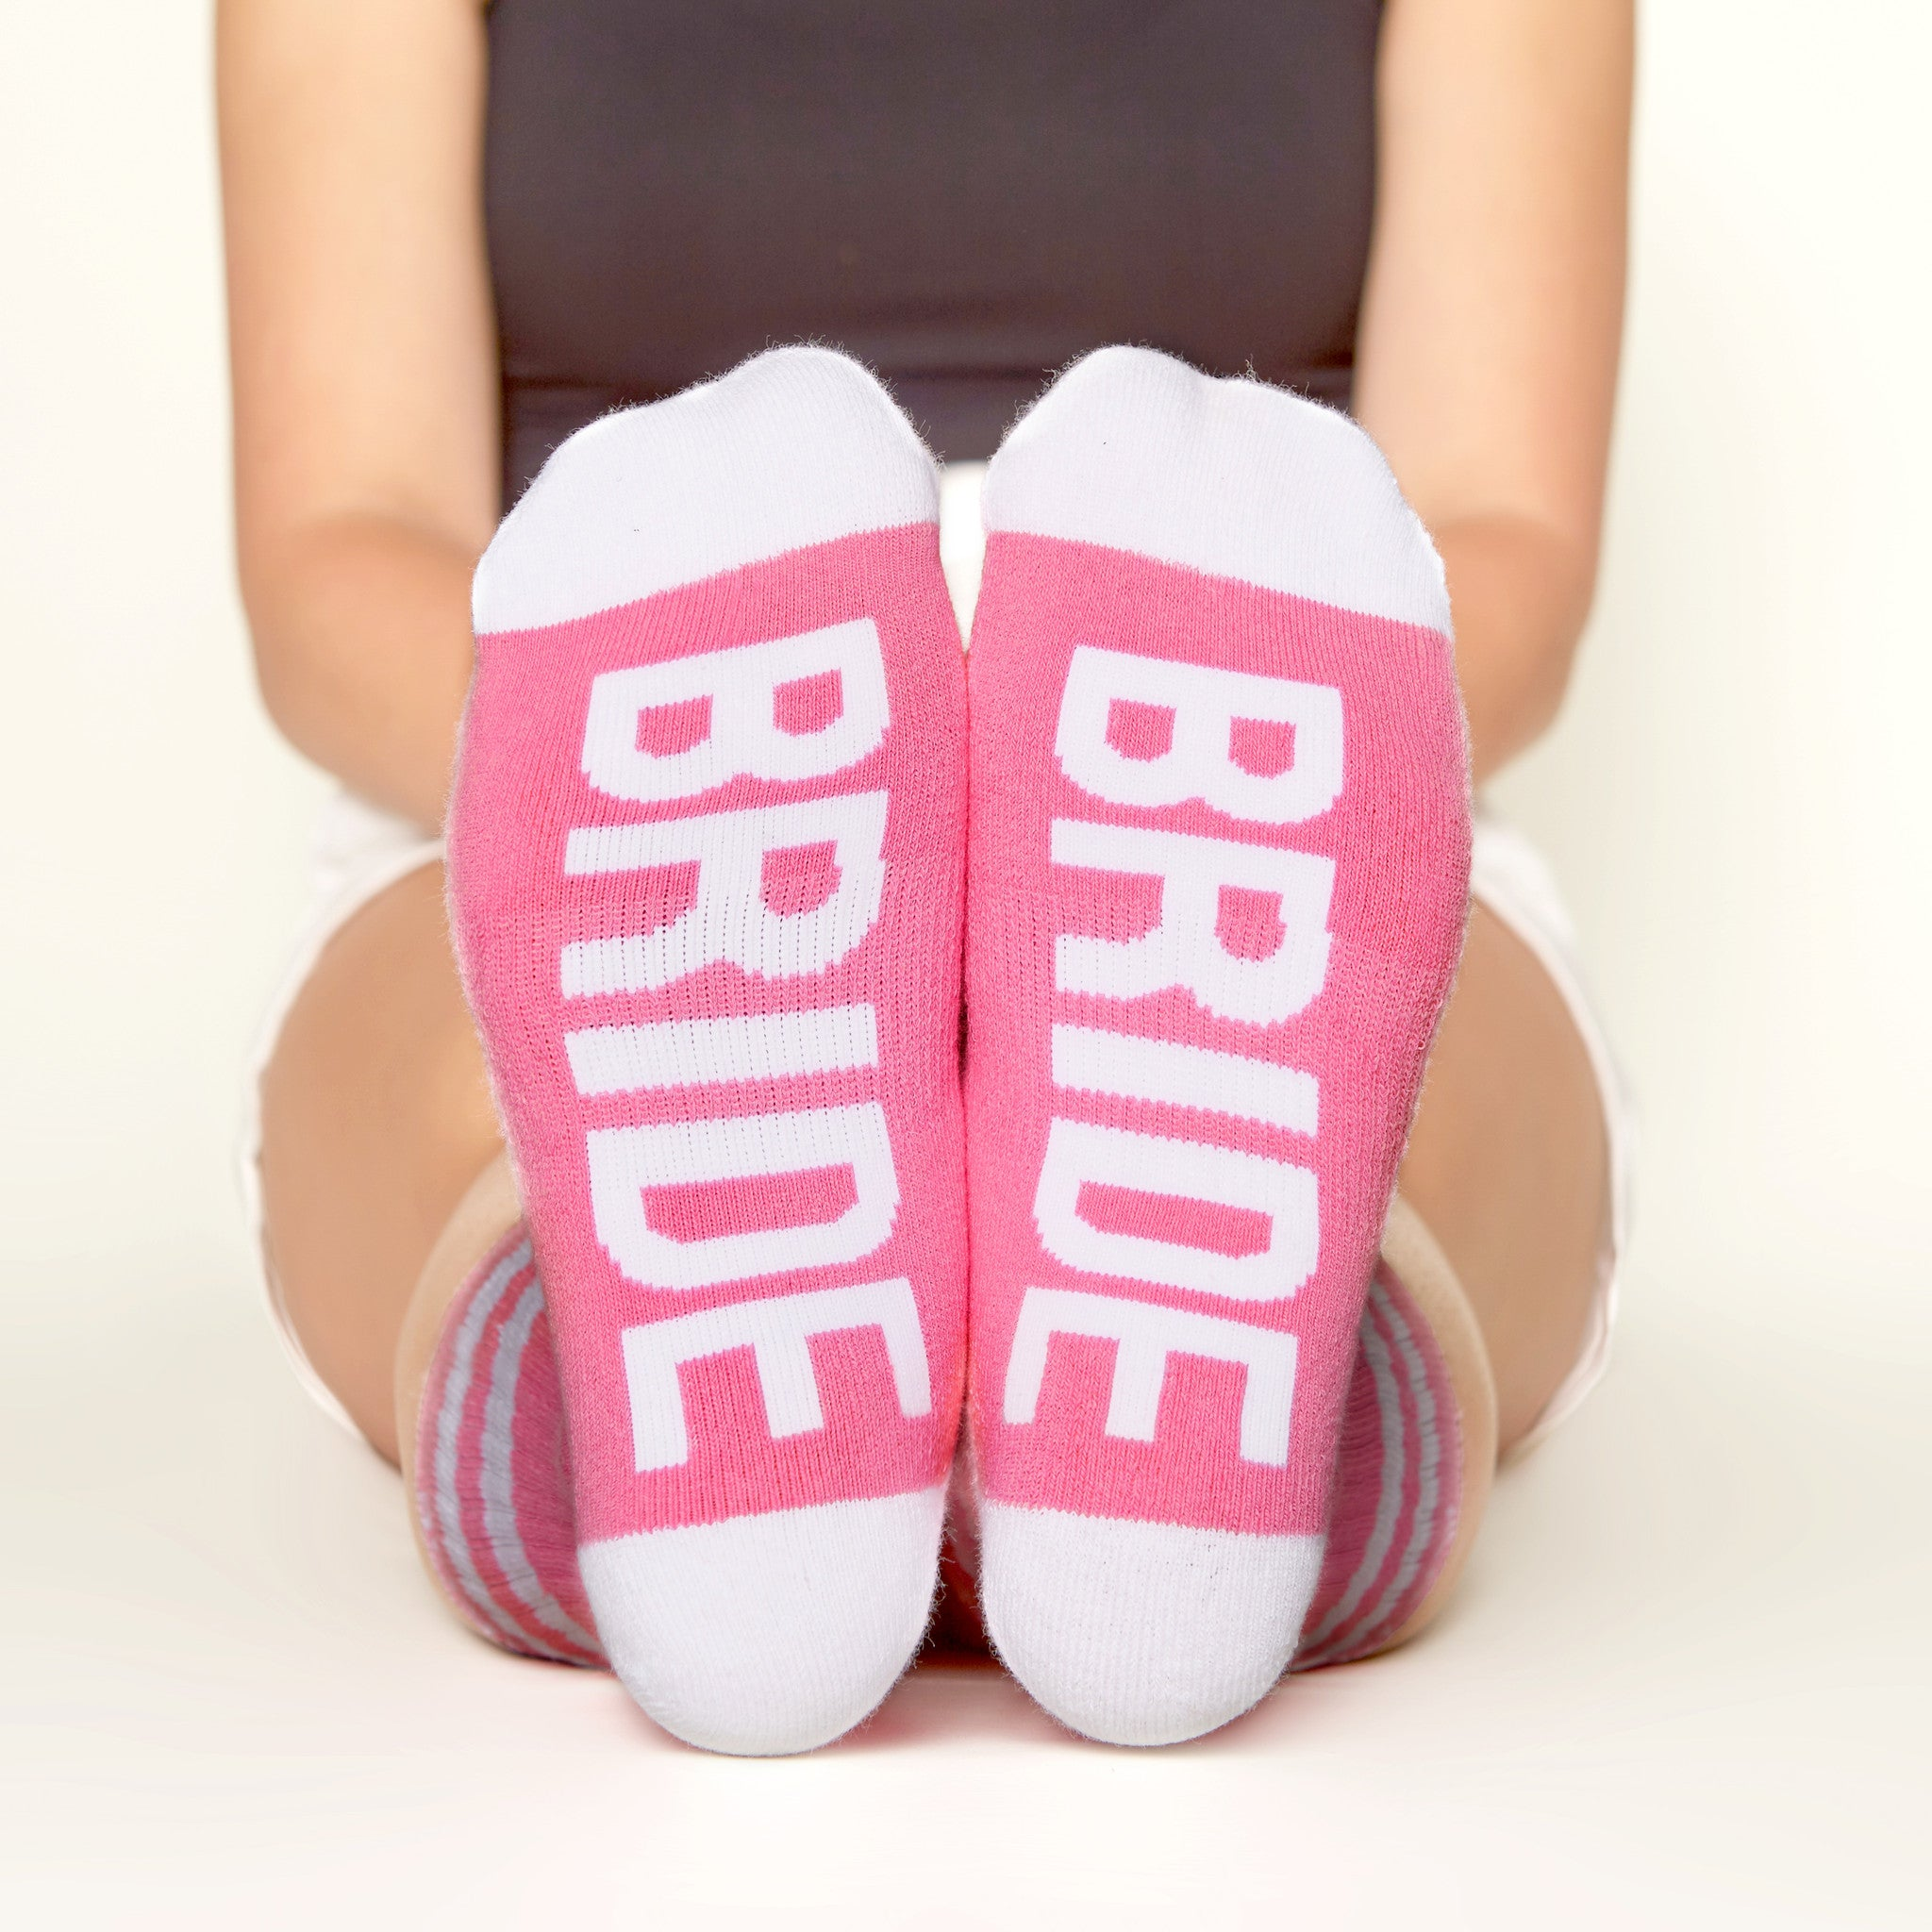 Wedding Sock Set (6 Pairs) - Womens bride  bottom front view